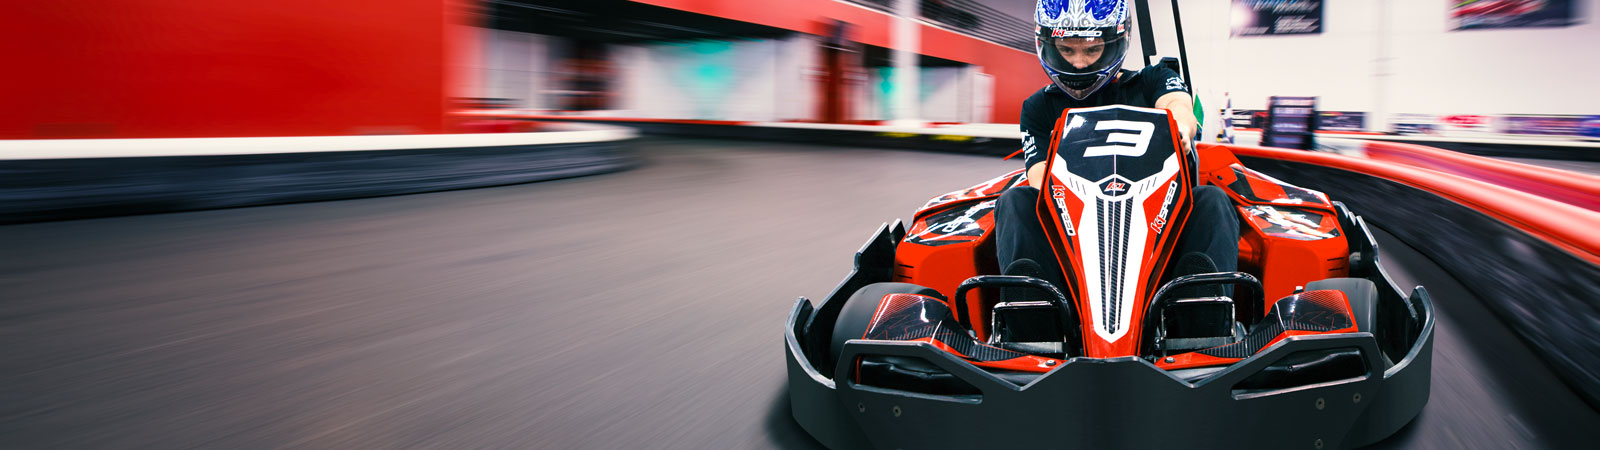 Montreal Location indoor kart racing